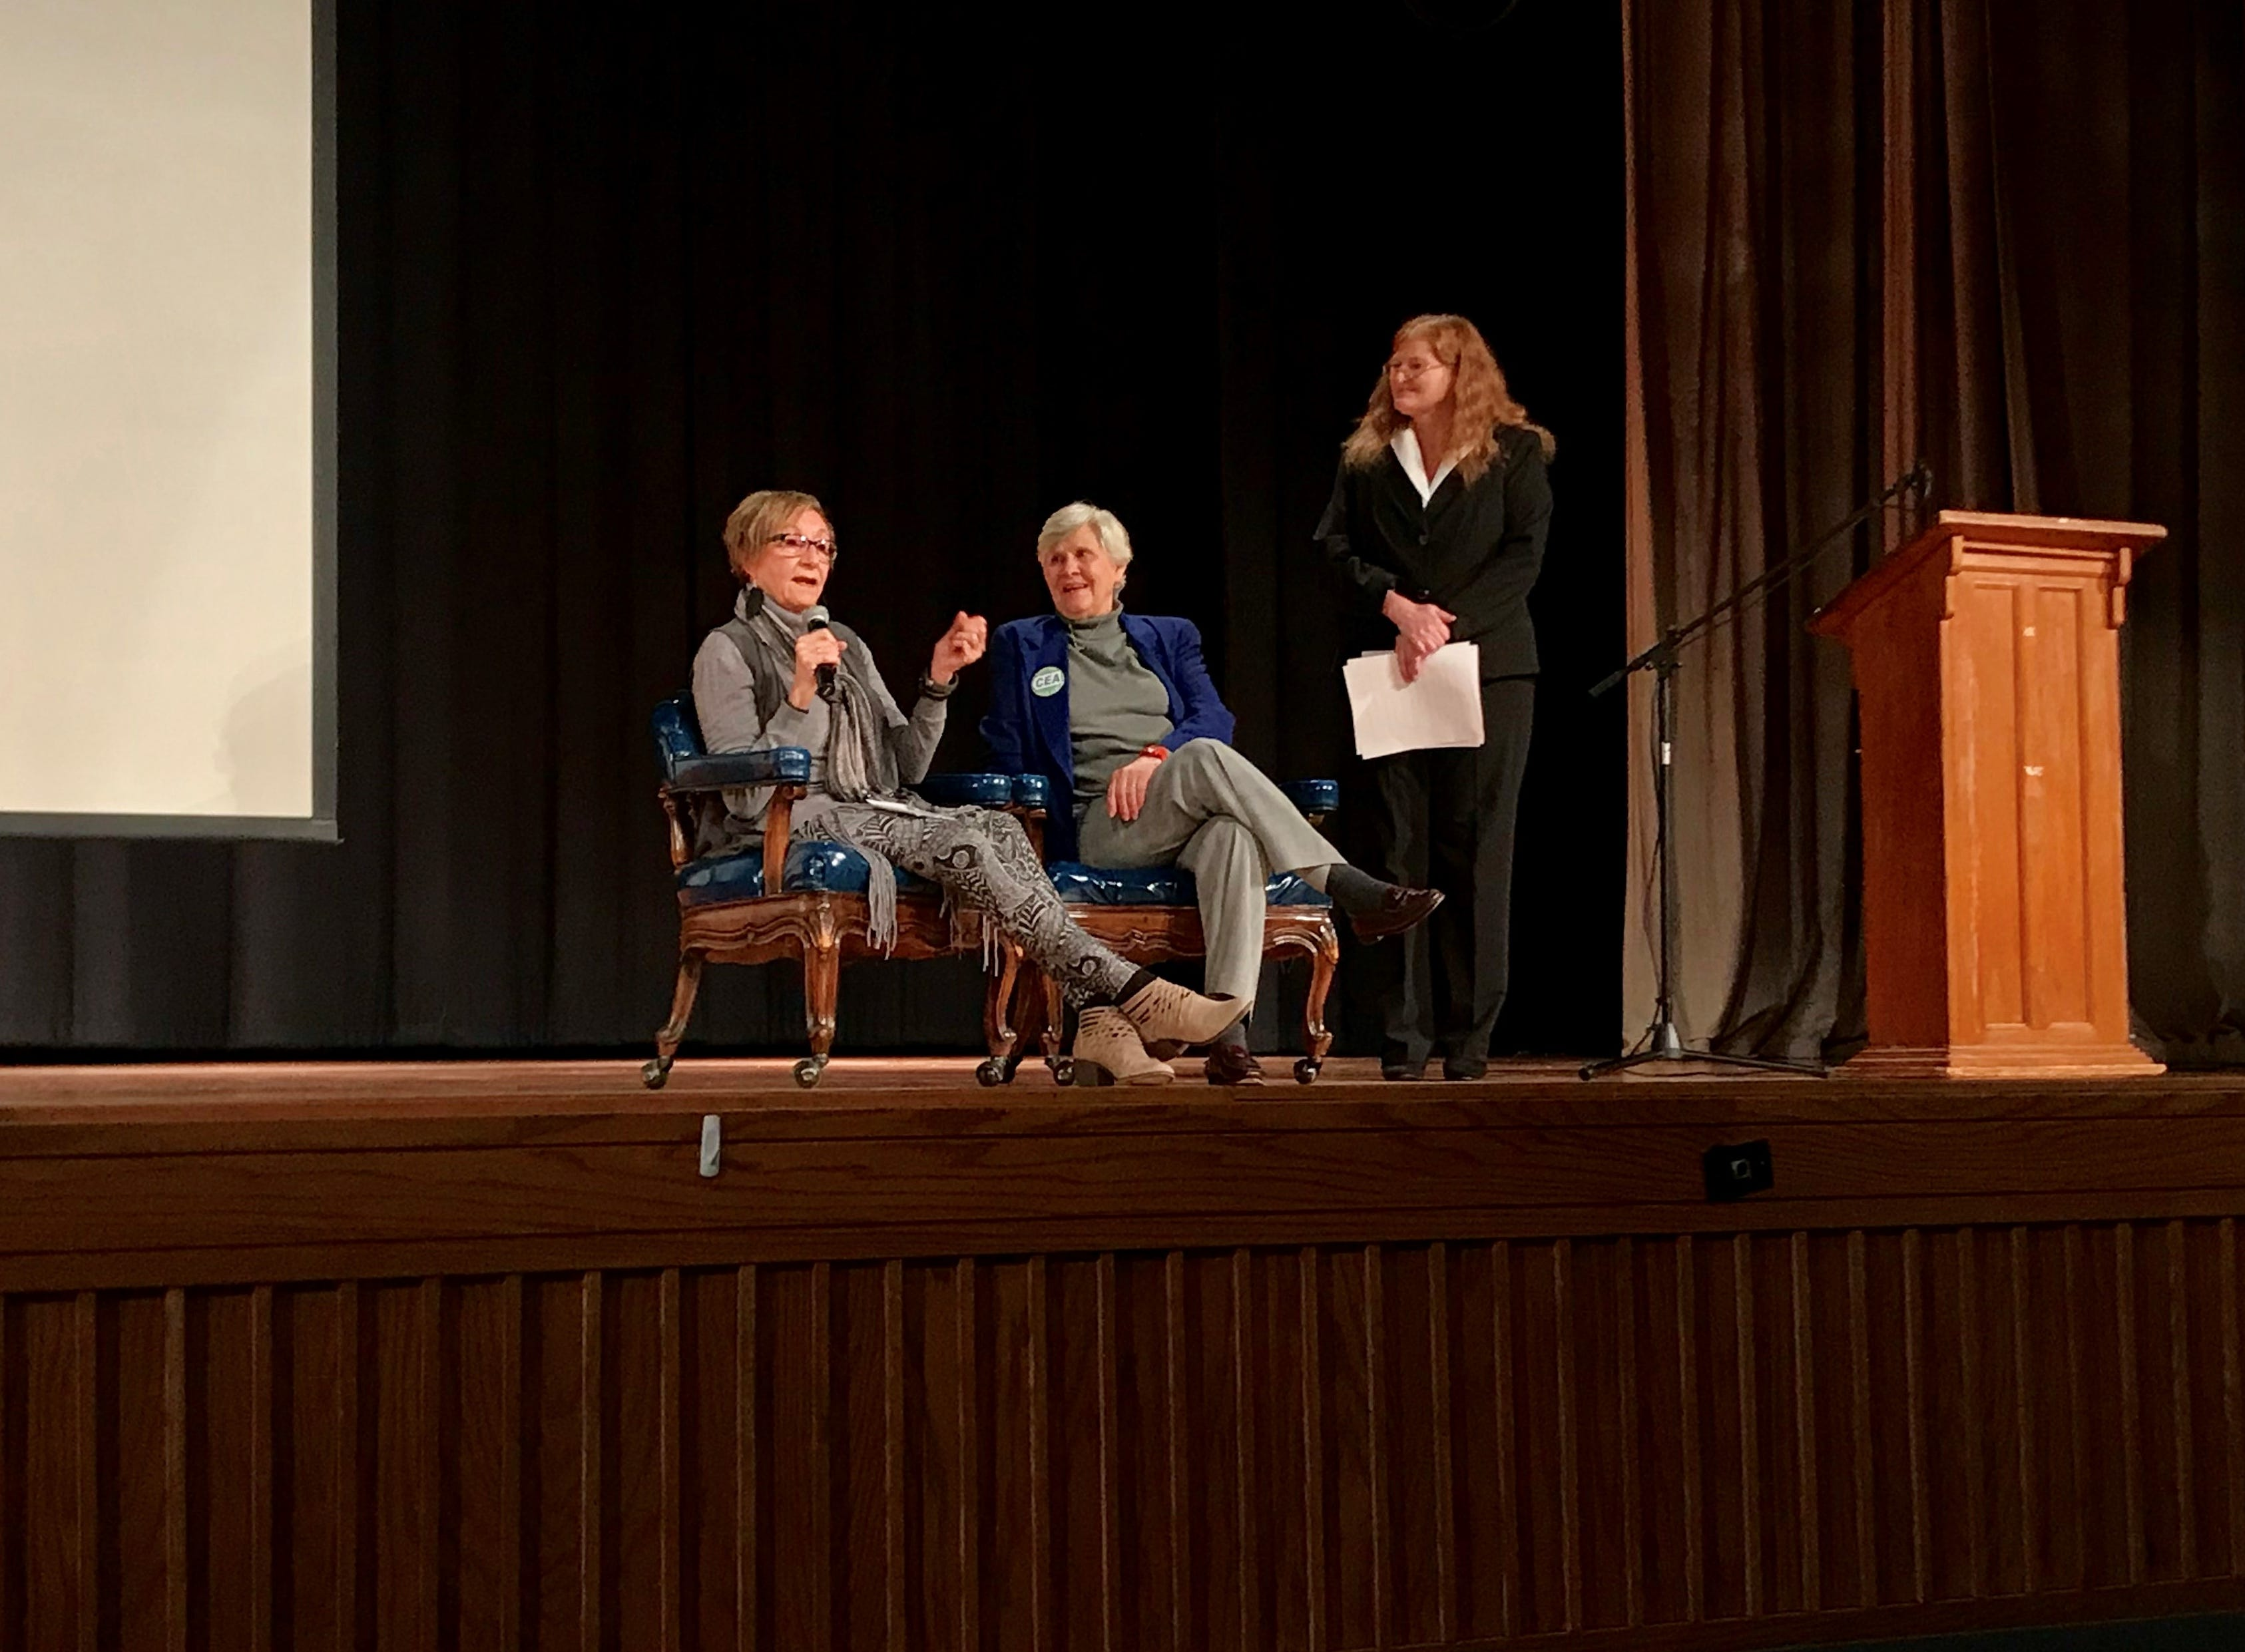 Sally Rathkamp, Sharon Verhoff and Tess Baker are onstage during the Educator Emeritus program on Friday. Verhoff and Rathkamp were honored during the event.